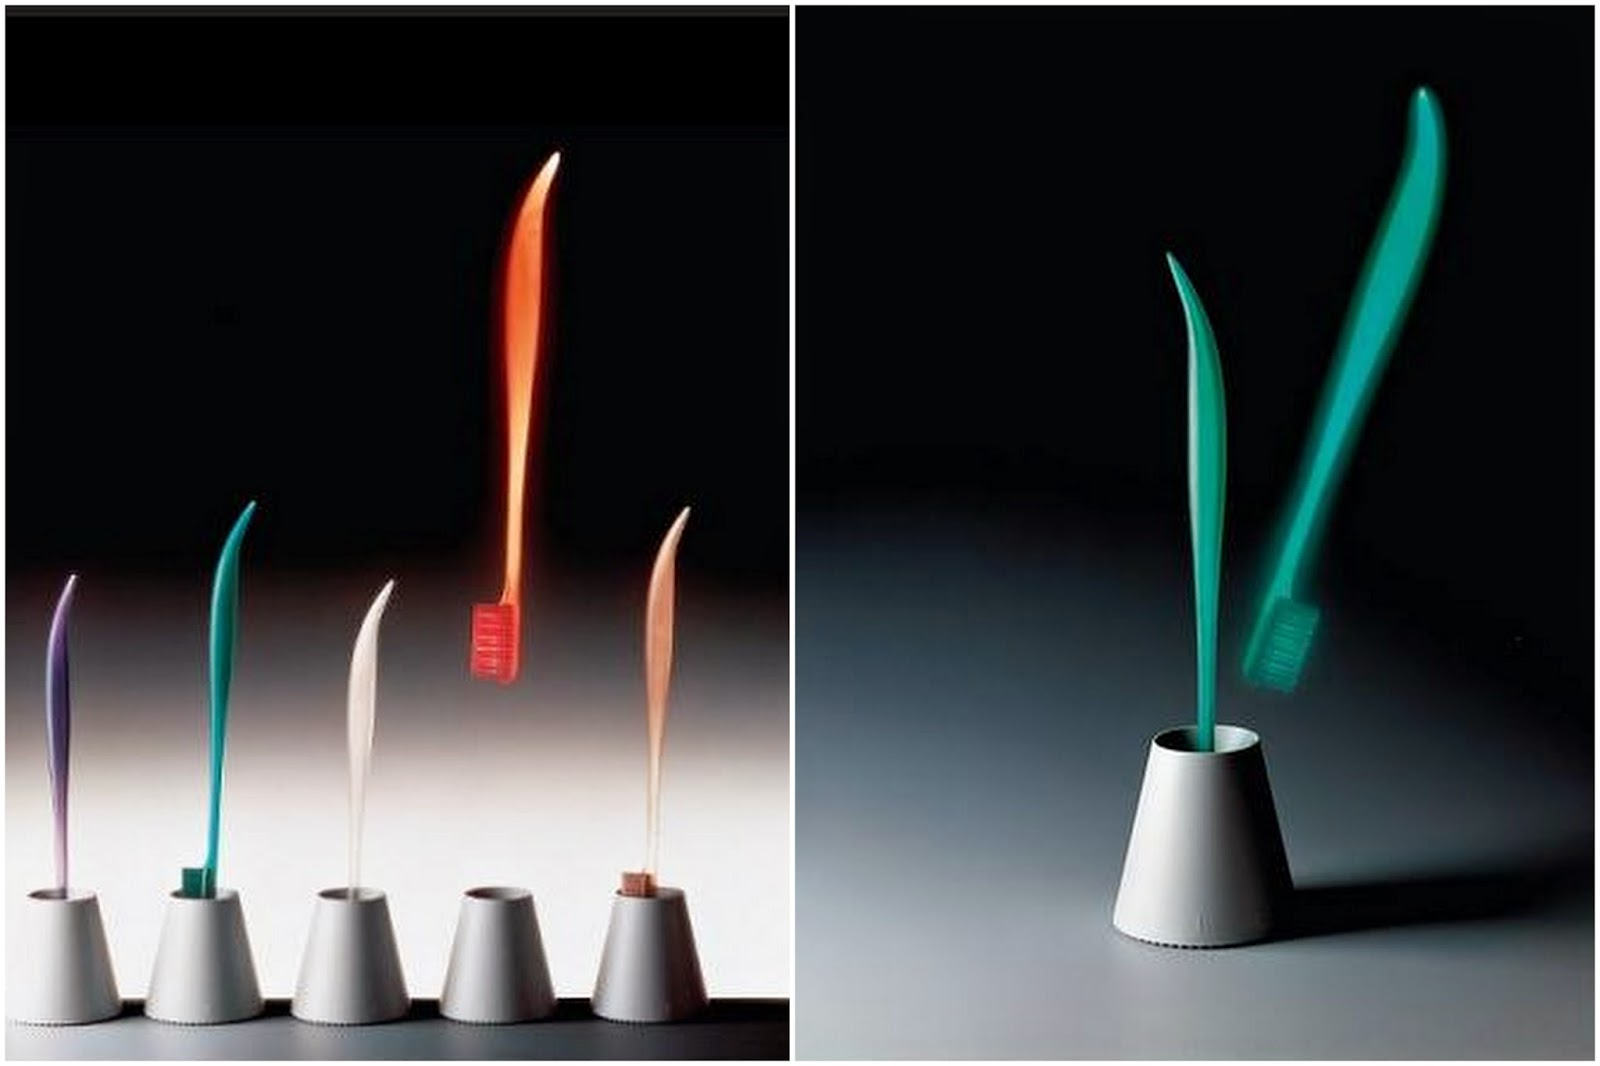 Philippe Starck, toothbrush for Fluocaril, 1989